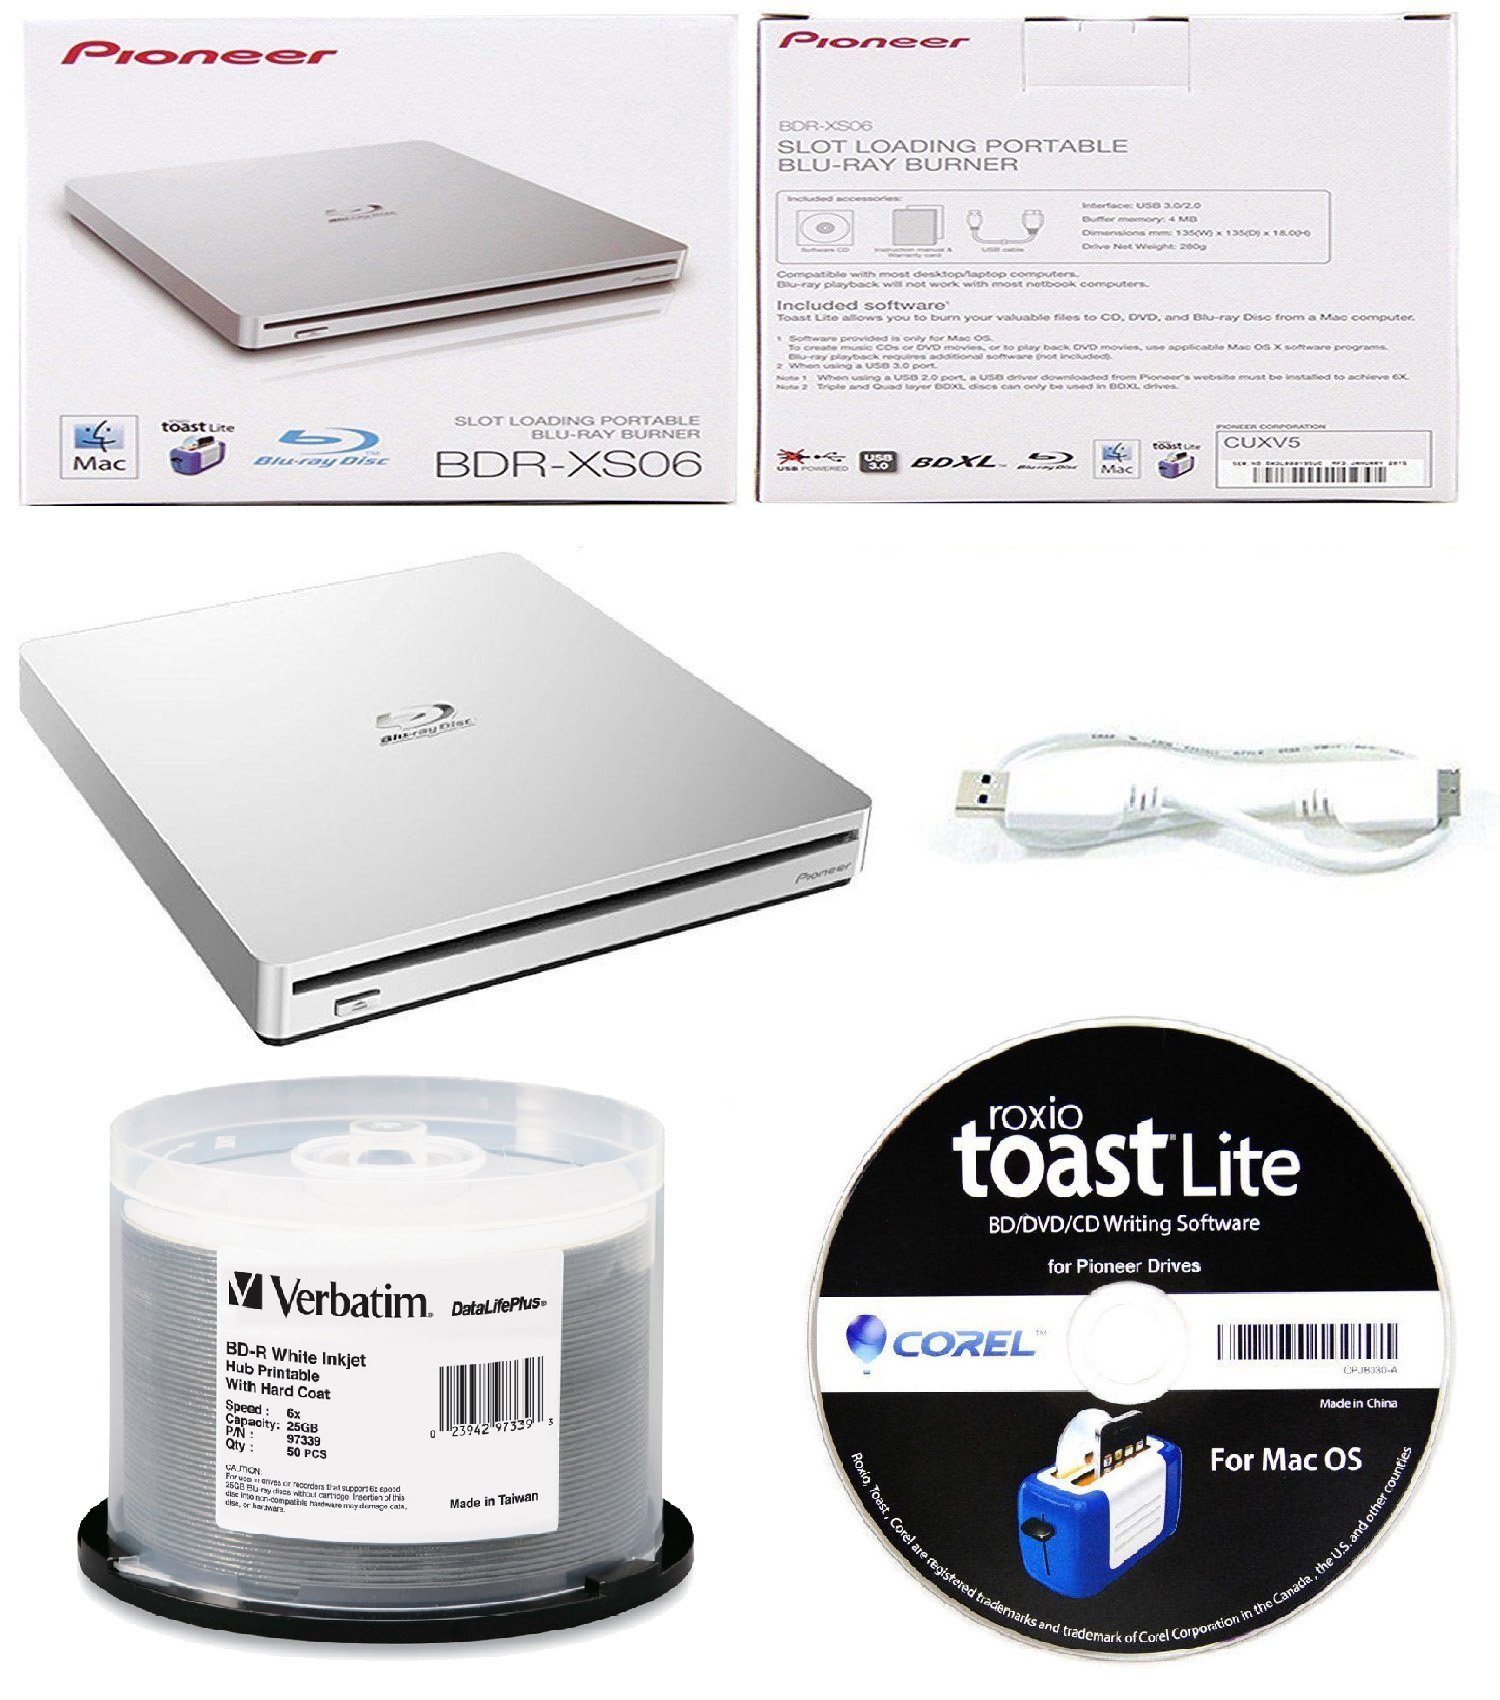 Pioneer 6x BDR-XS06 Slim Slot Portable External Blu-ray BDXL Burner, Roxio Toast Lite Software and USB Cable Bundle with 50pk BD-R Verbatim 25GB 6X DataLifePlus White Inkjet, Hub Printable